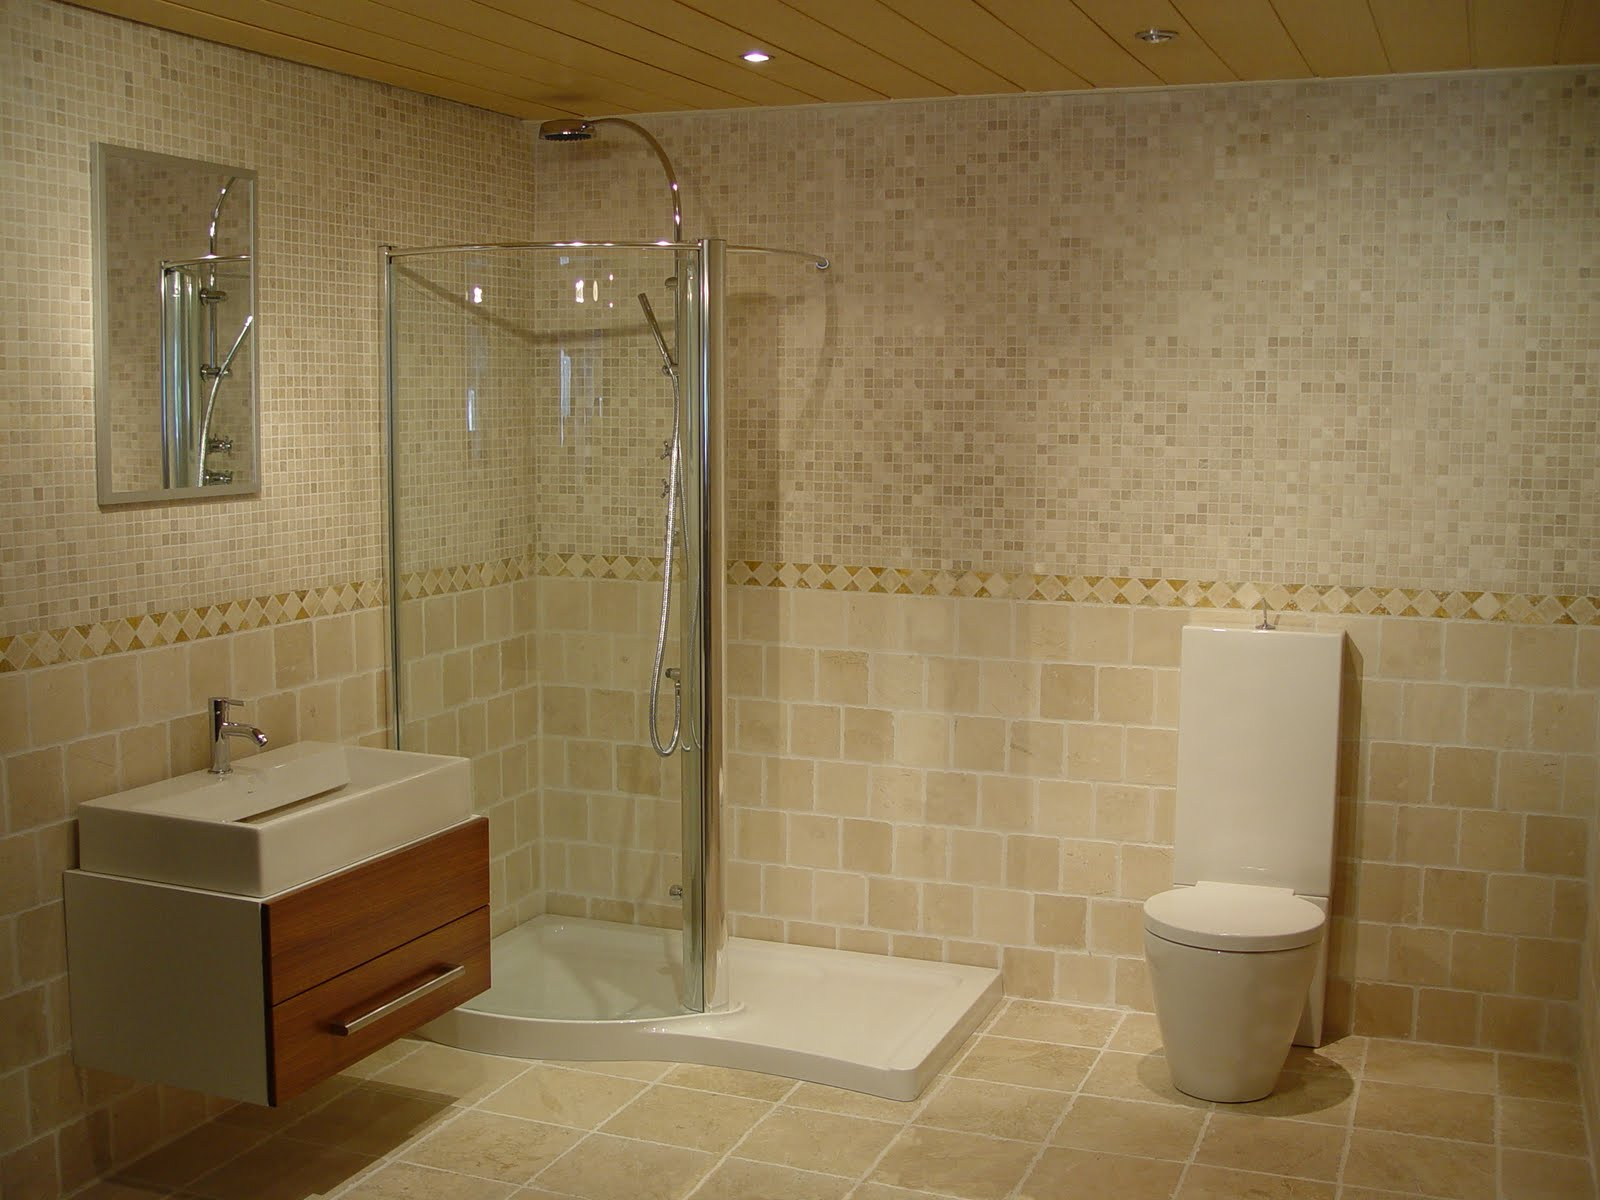 bathroom tiles designs ideas photo - 1